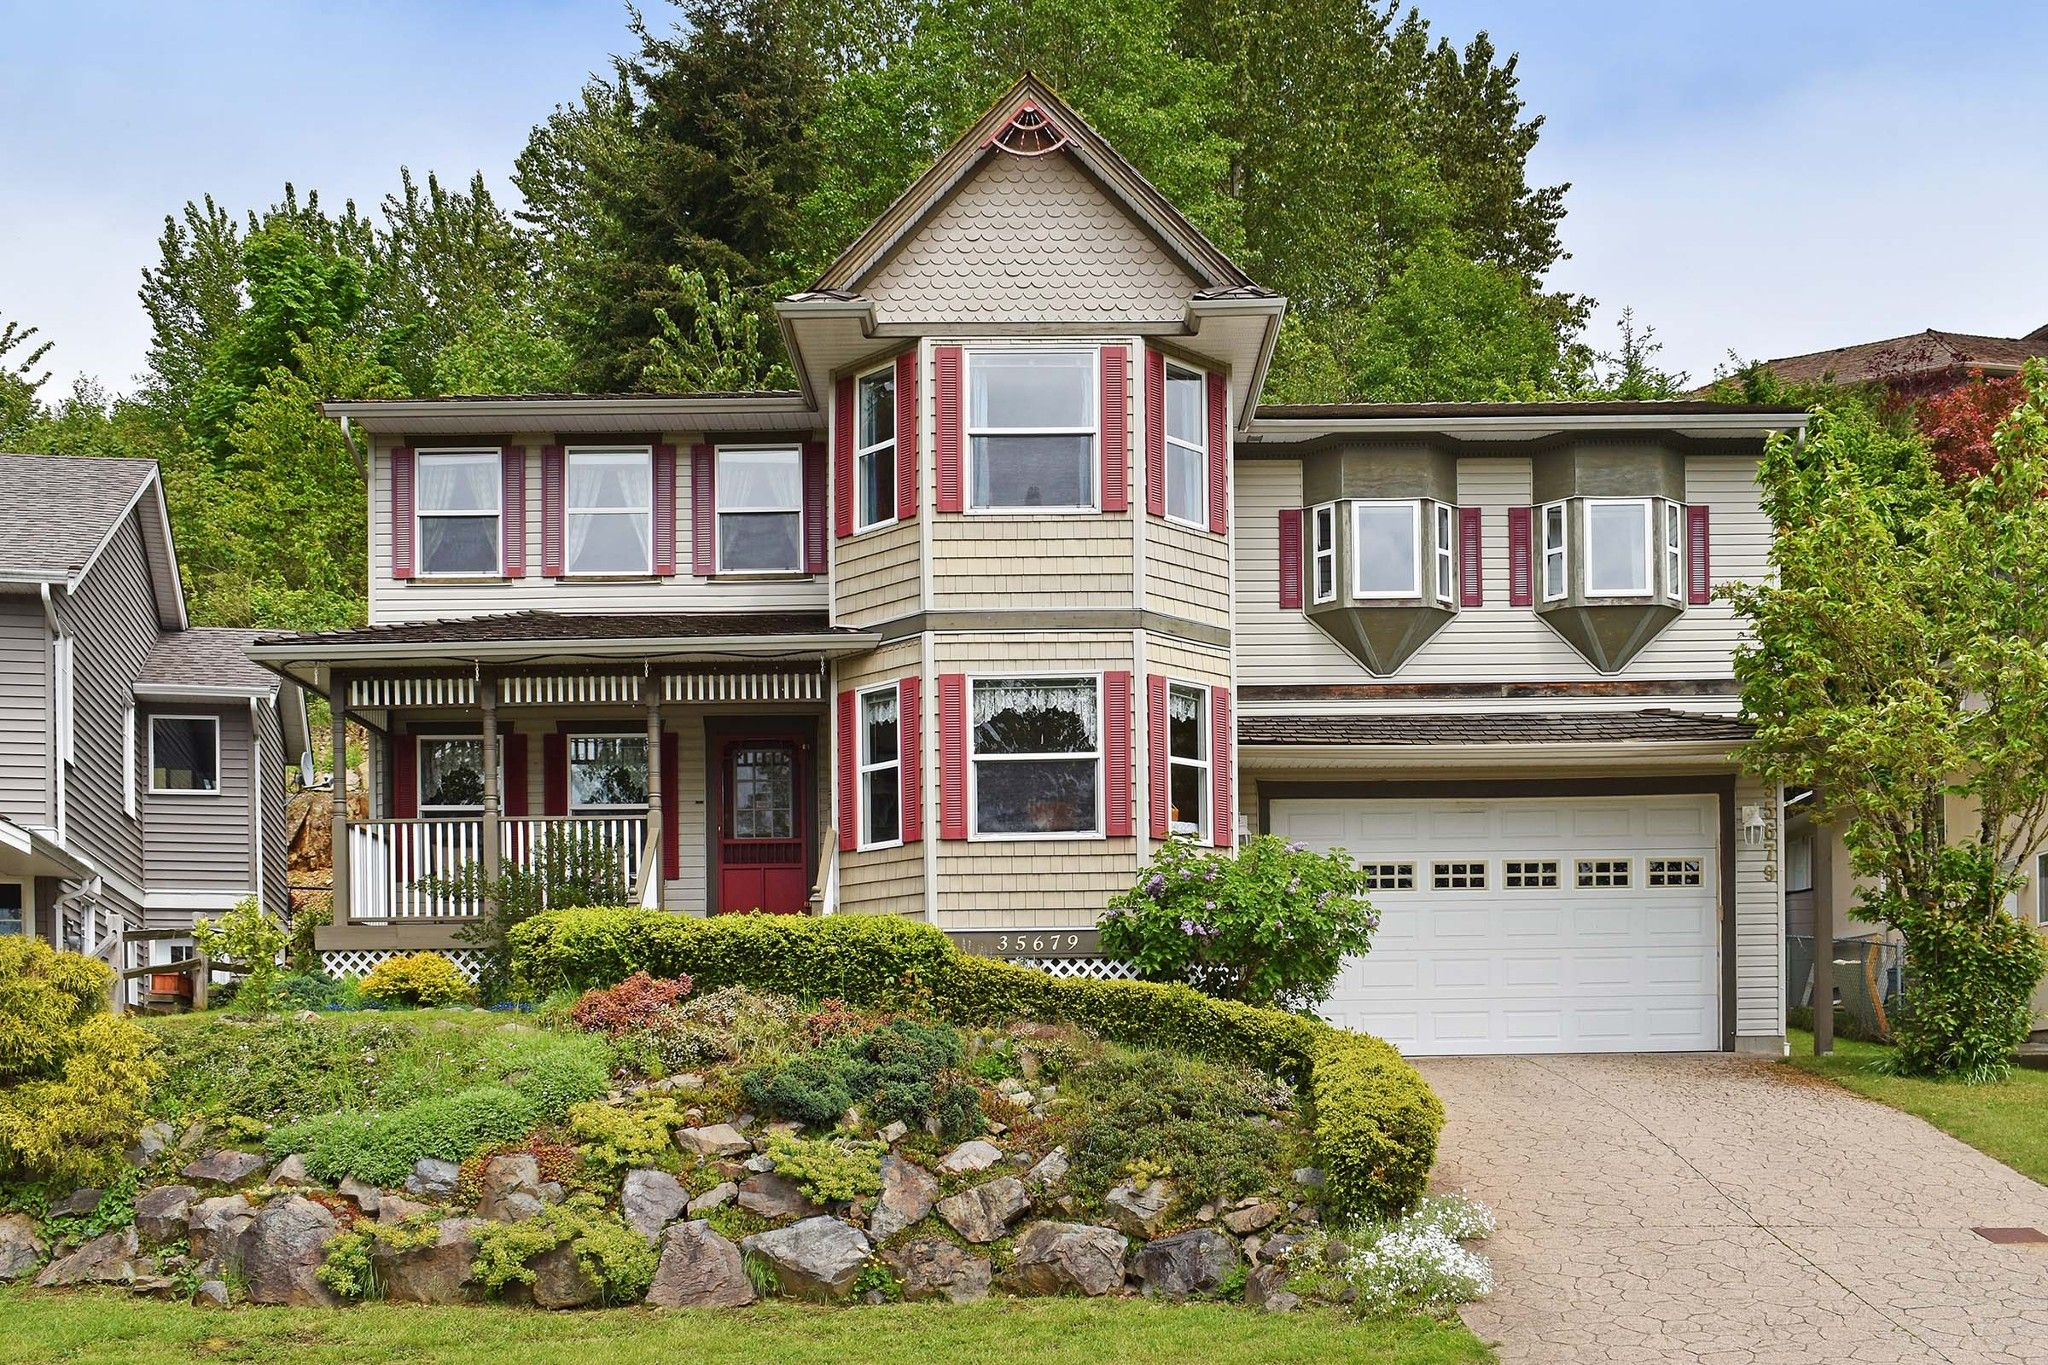 """Main Photo: 35679 TIMBERLANE Drive in Abbotsford: Abbotsford East House for sale in """"MOUNTAIN VILLAGE"""" : MLS®# R2393387"""